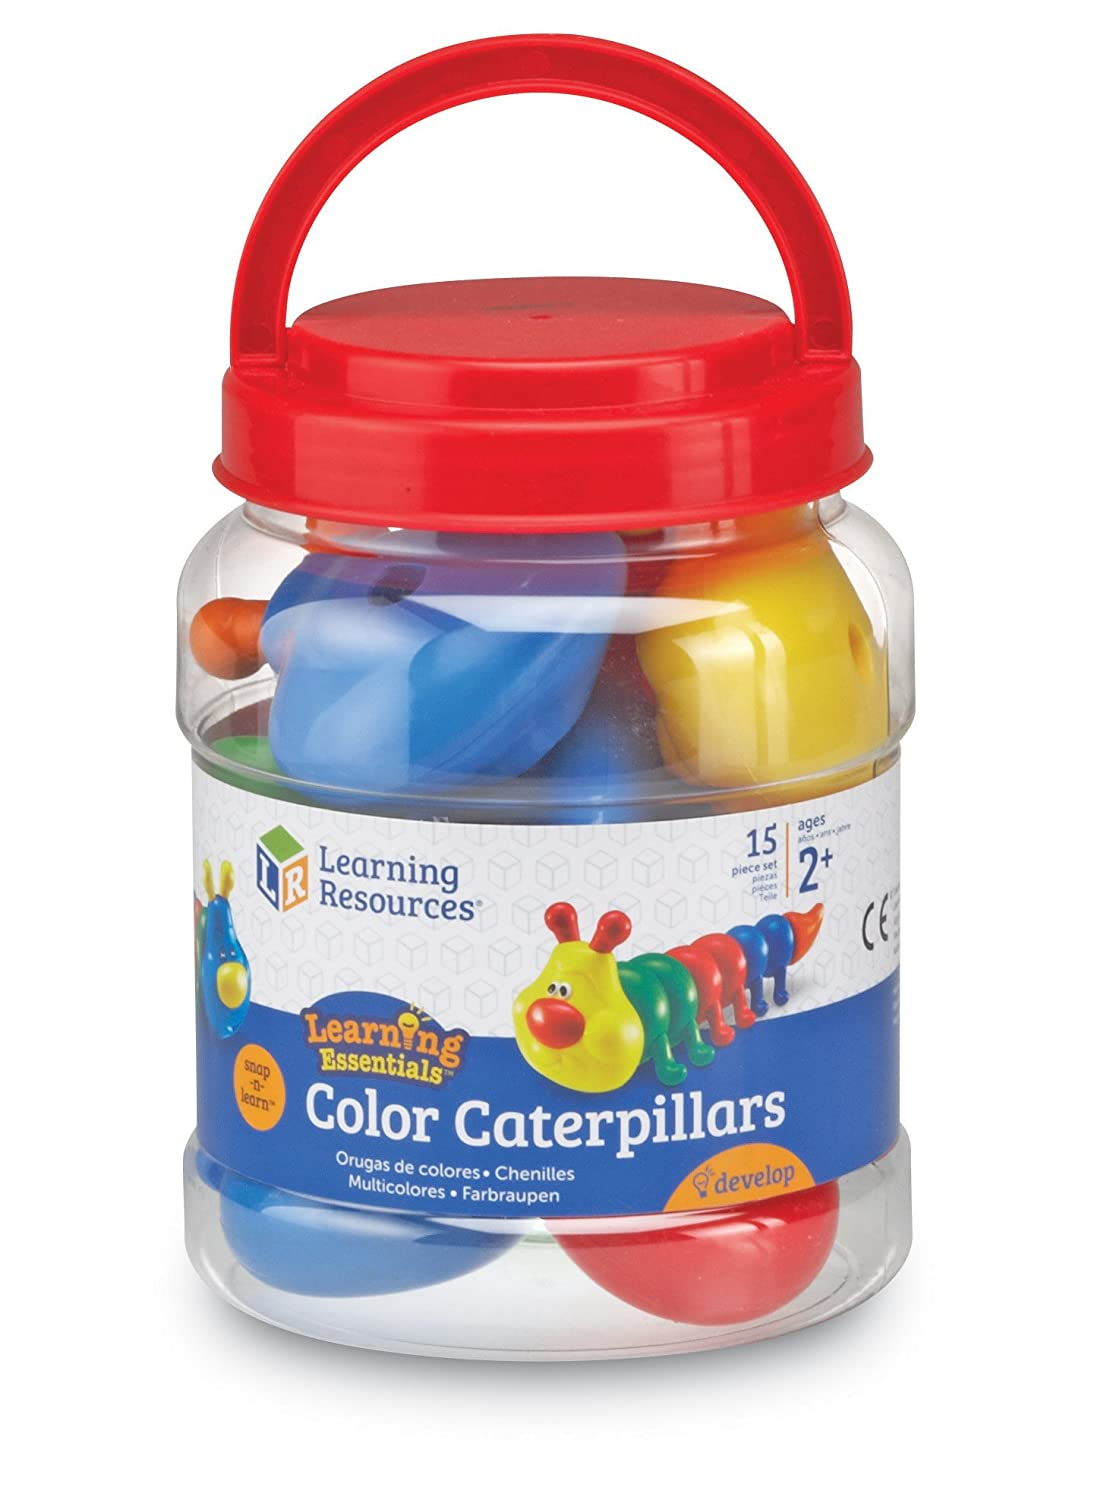 Learning Resources Snap-n-Learn Color Caterpillars LER6701